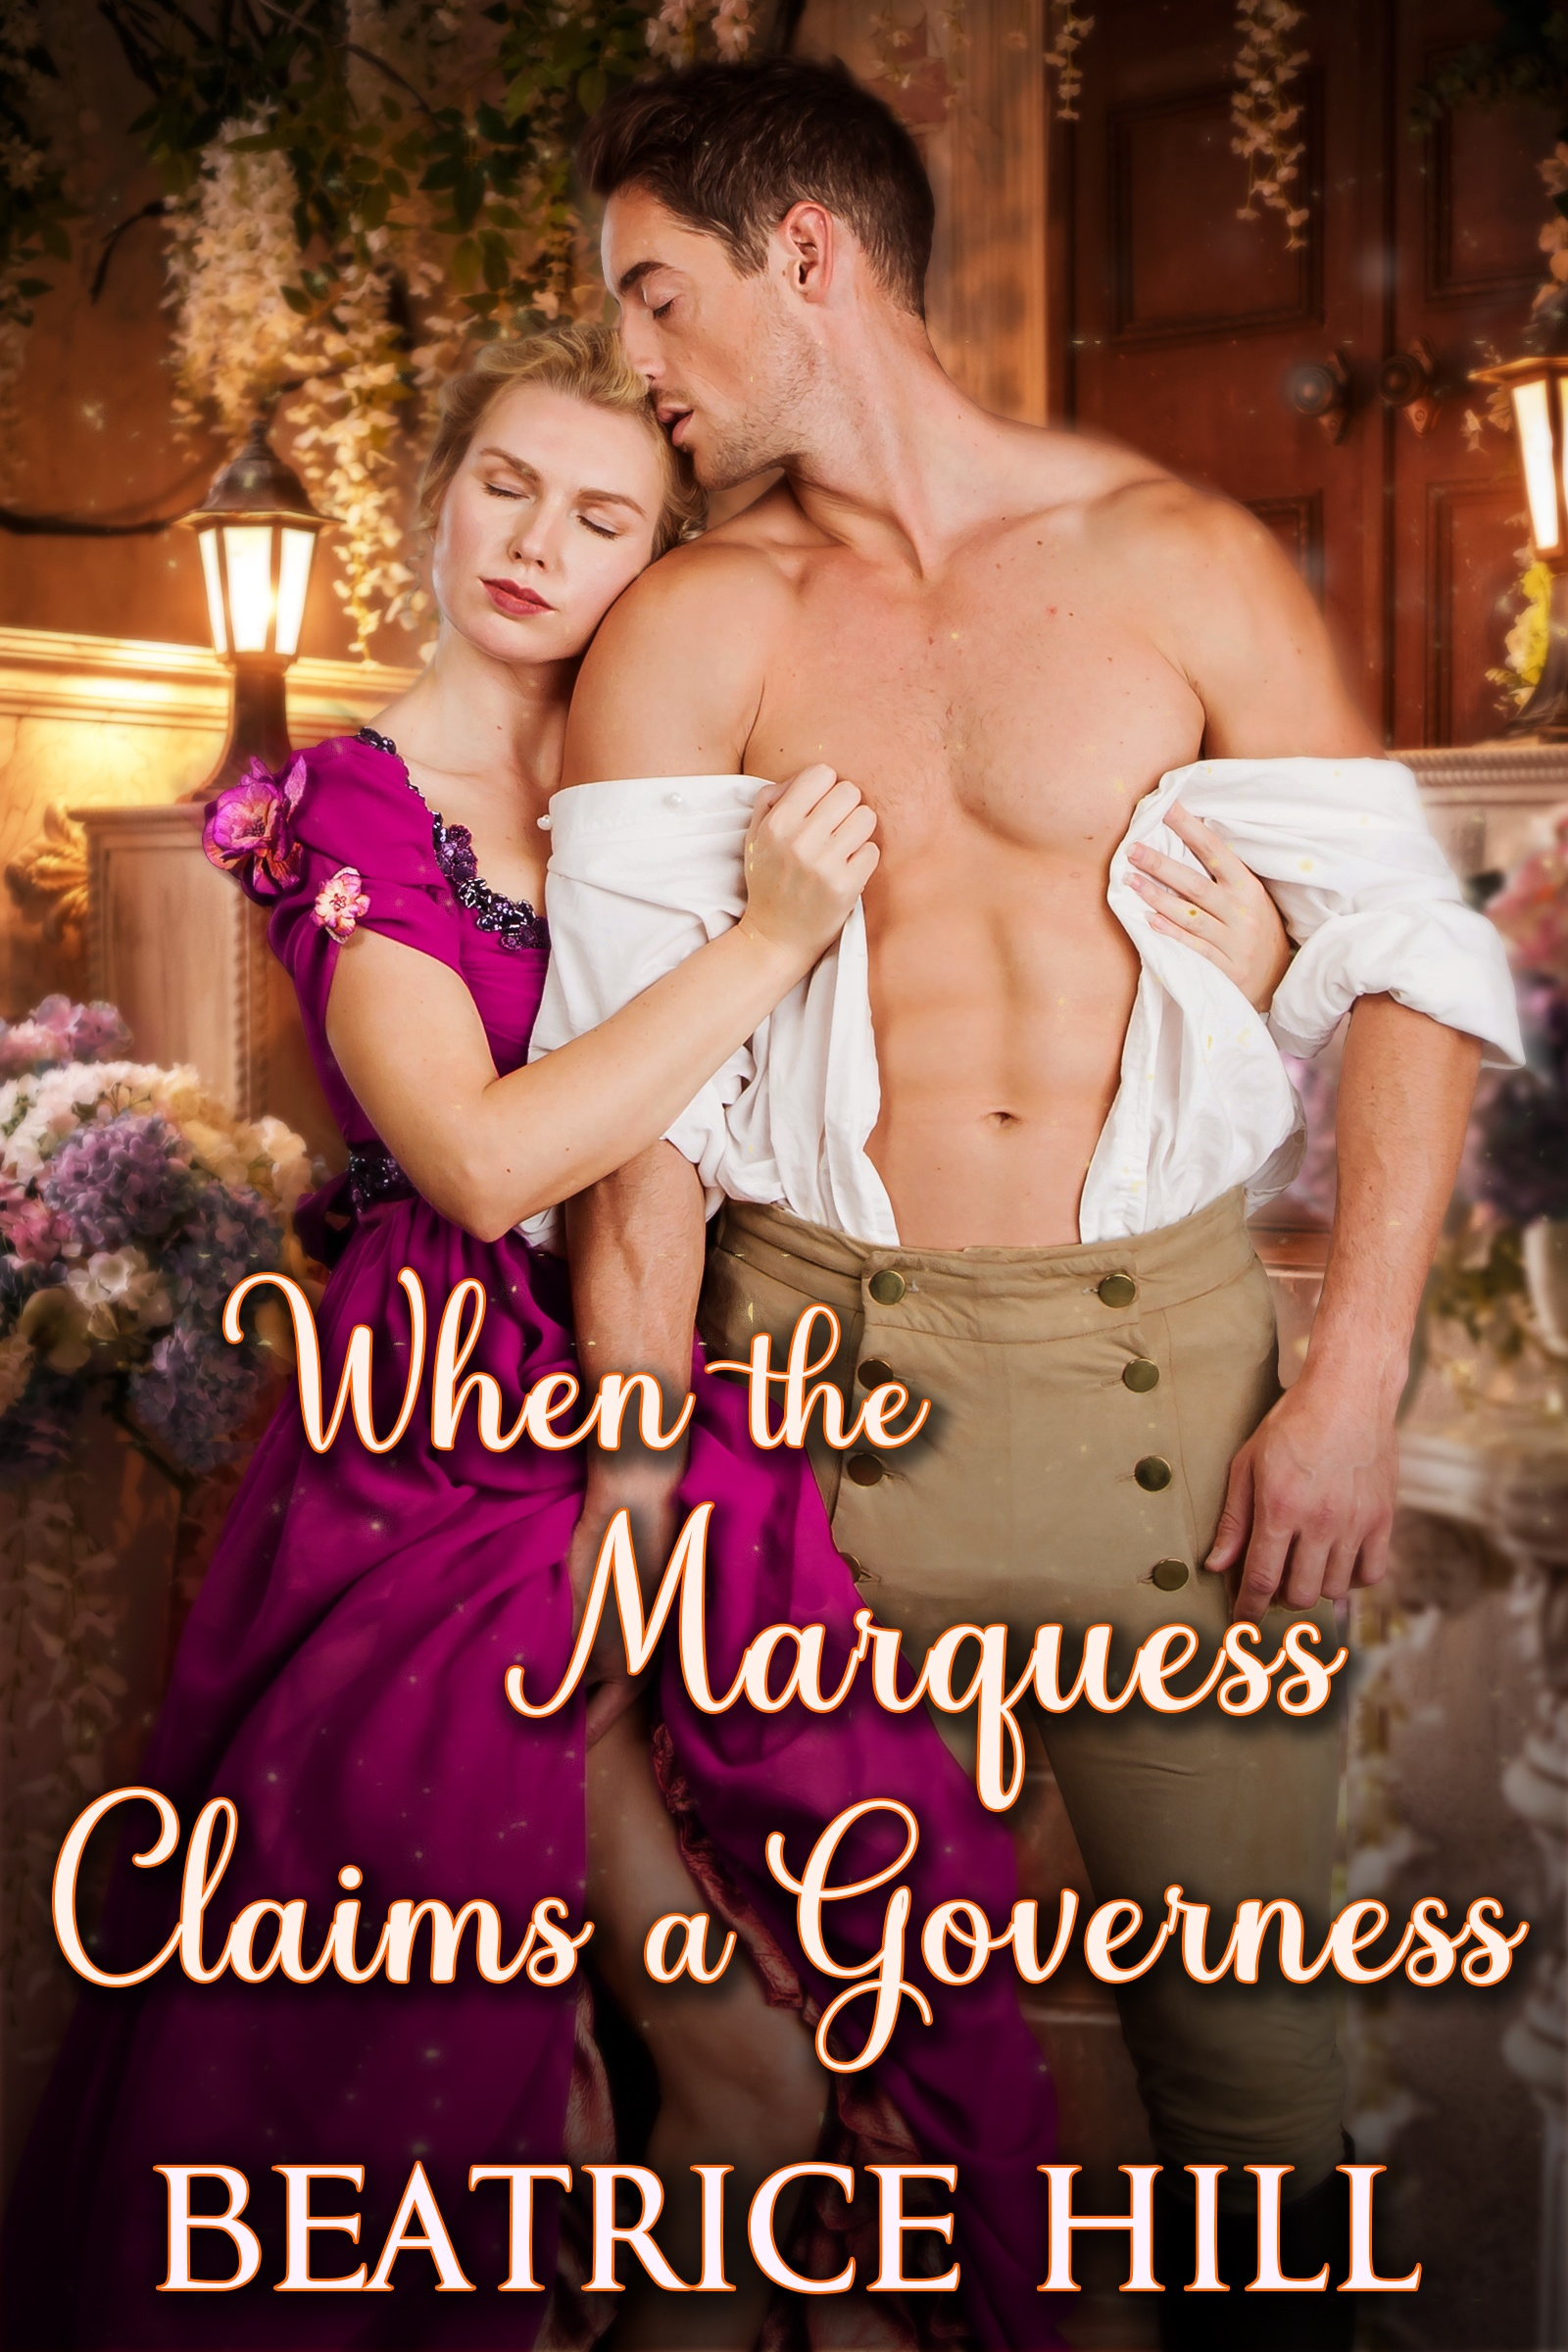 When-the-Marquess-Claims-a-Governess-1.jpg